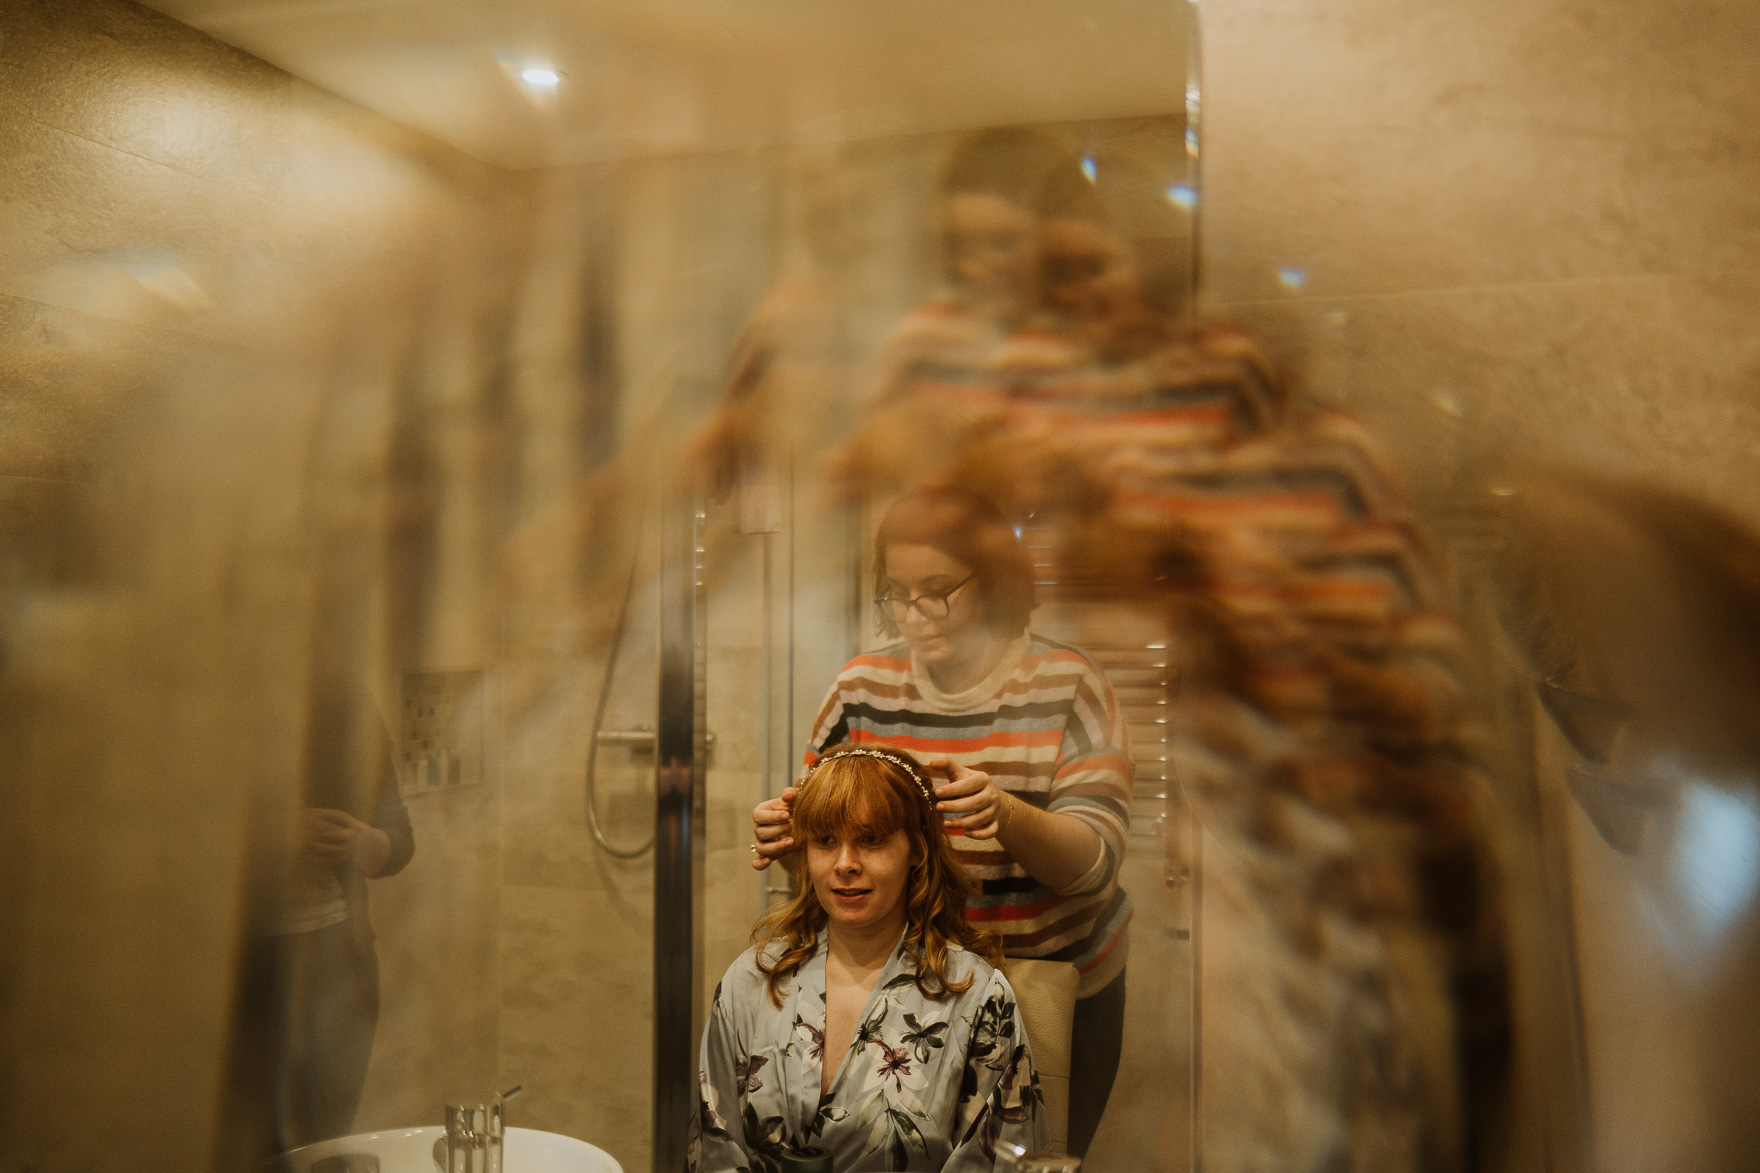 A person standing in front of a mirror posing for the camera